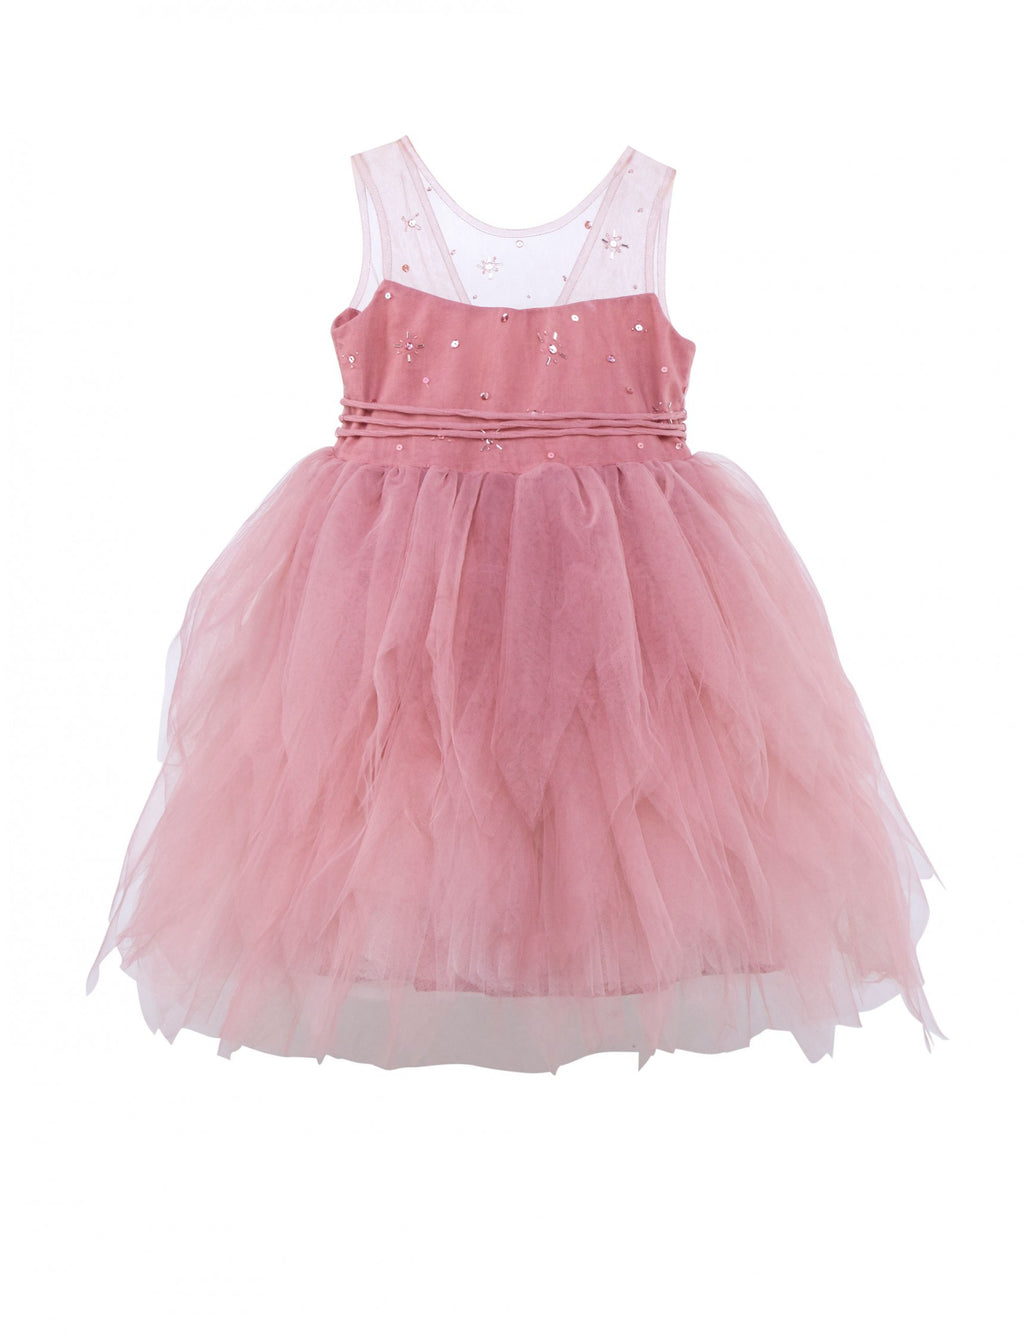 Pink cotton and tulle dress, soft and full